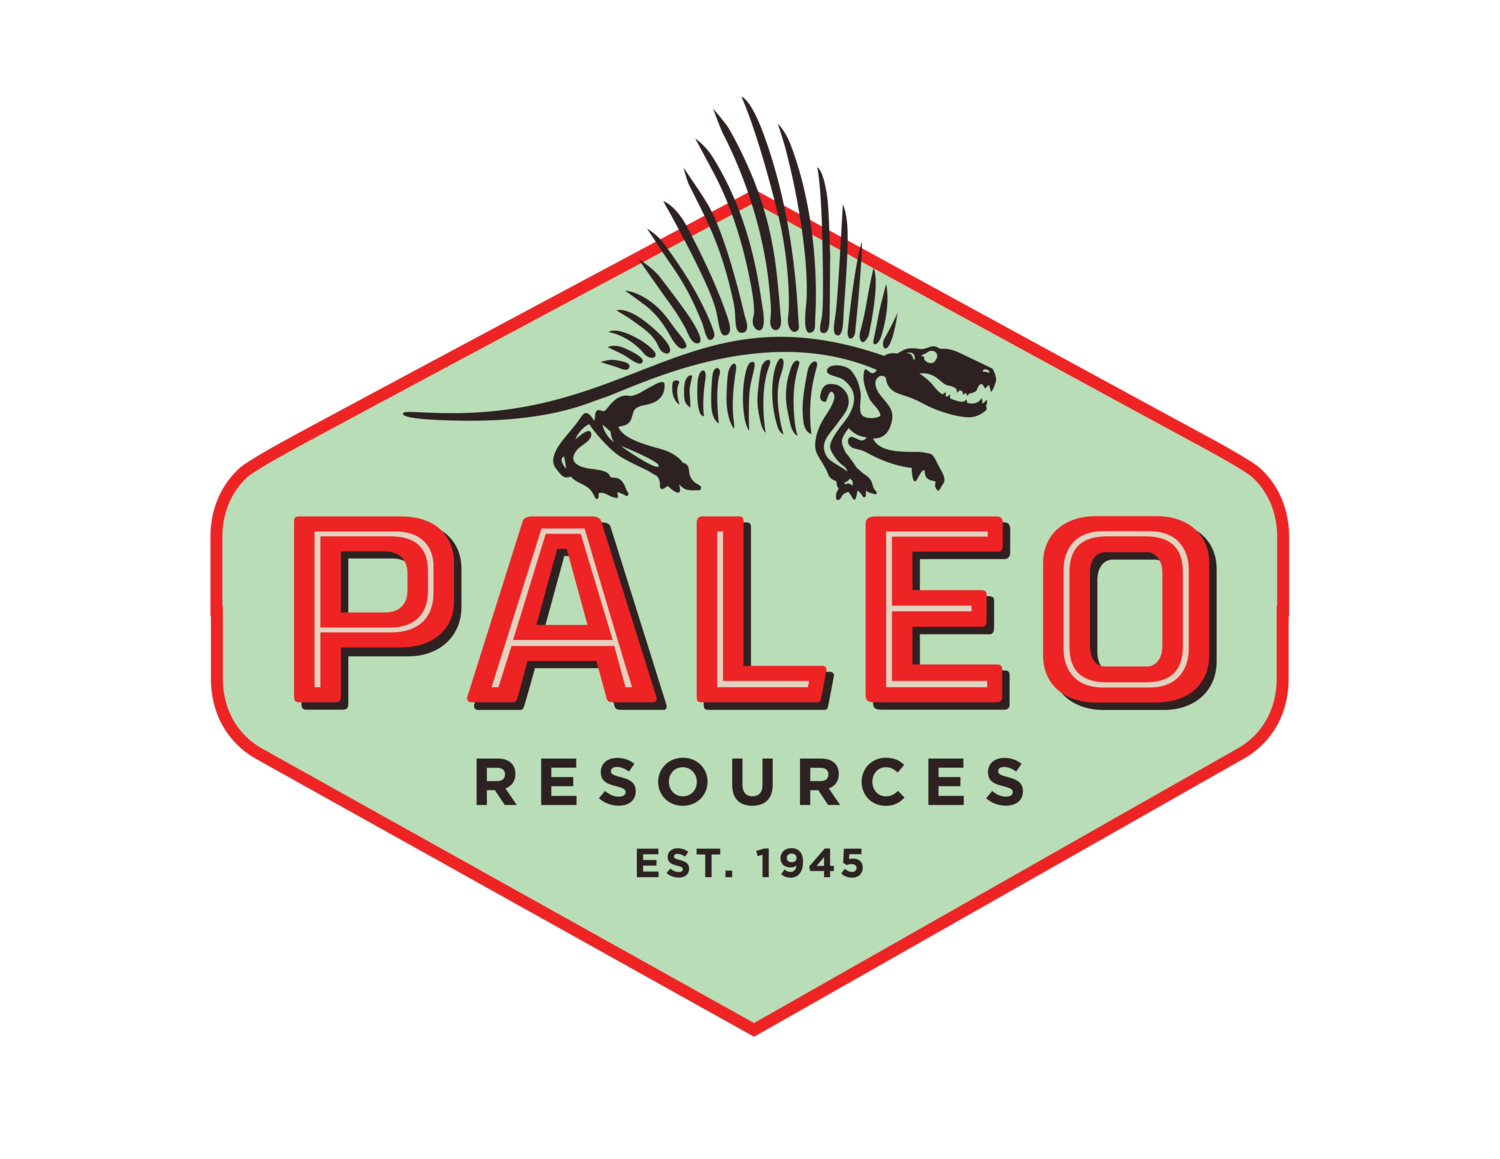 Paleo Resources, Inc